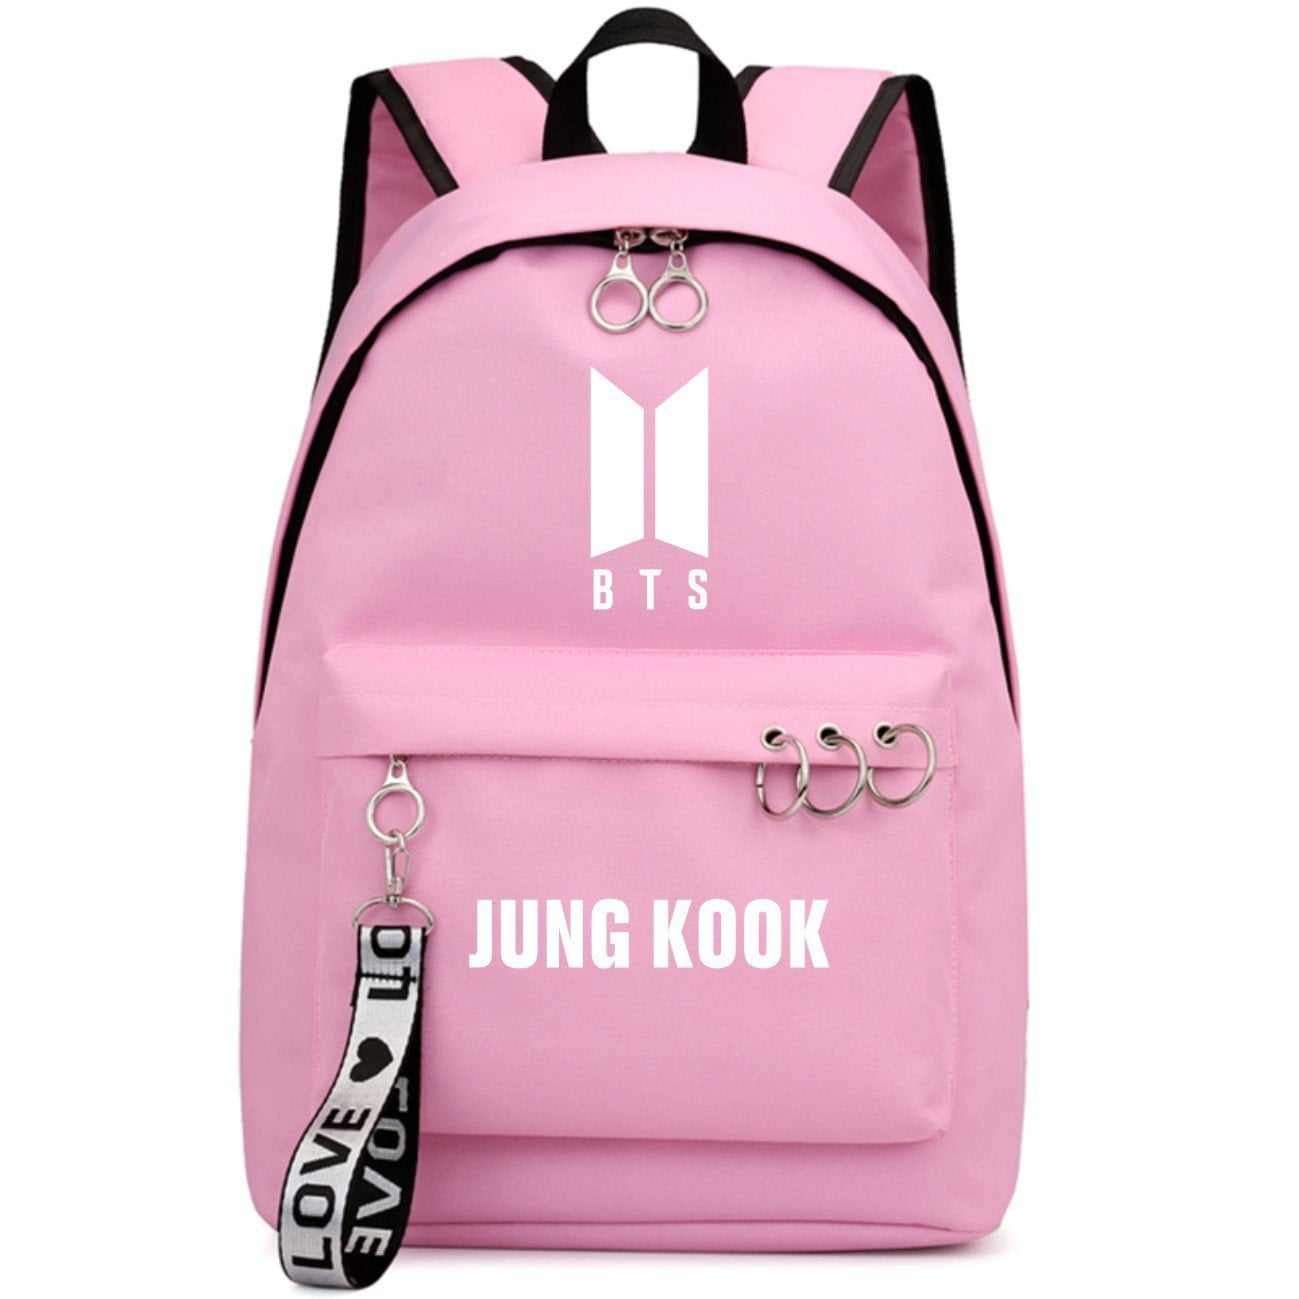 BTS New Logo Large Capacity Backpack / School Bag with Silver Rings in 2 Colours  583071224455#3925845045047